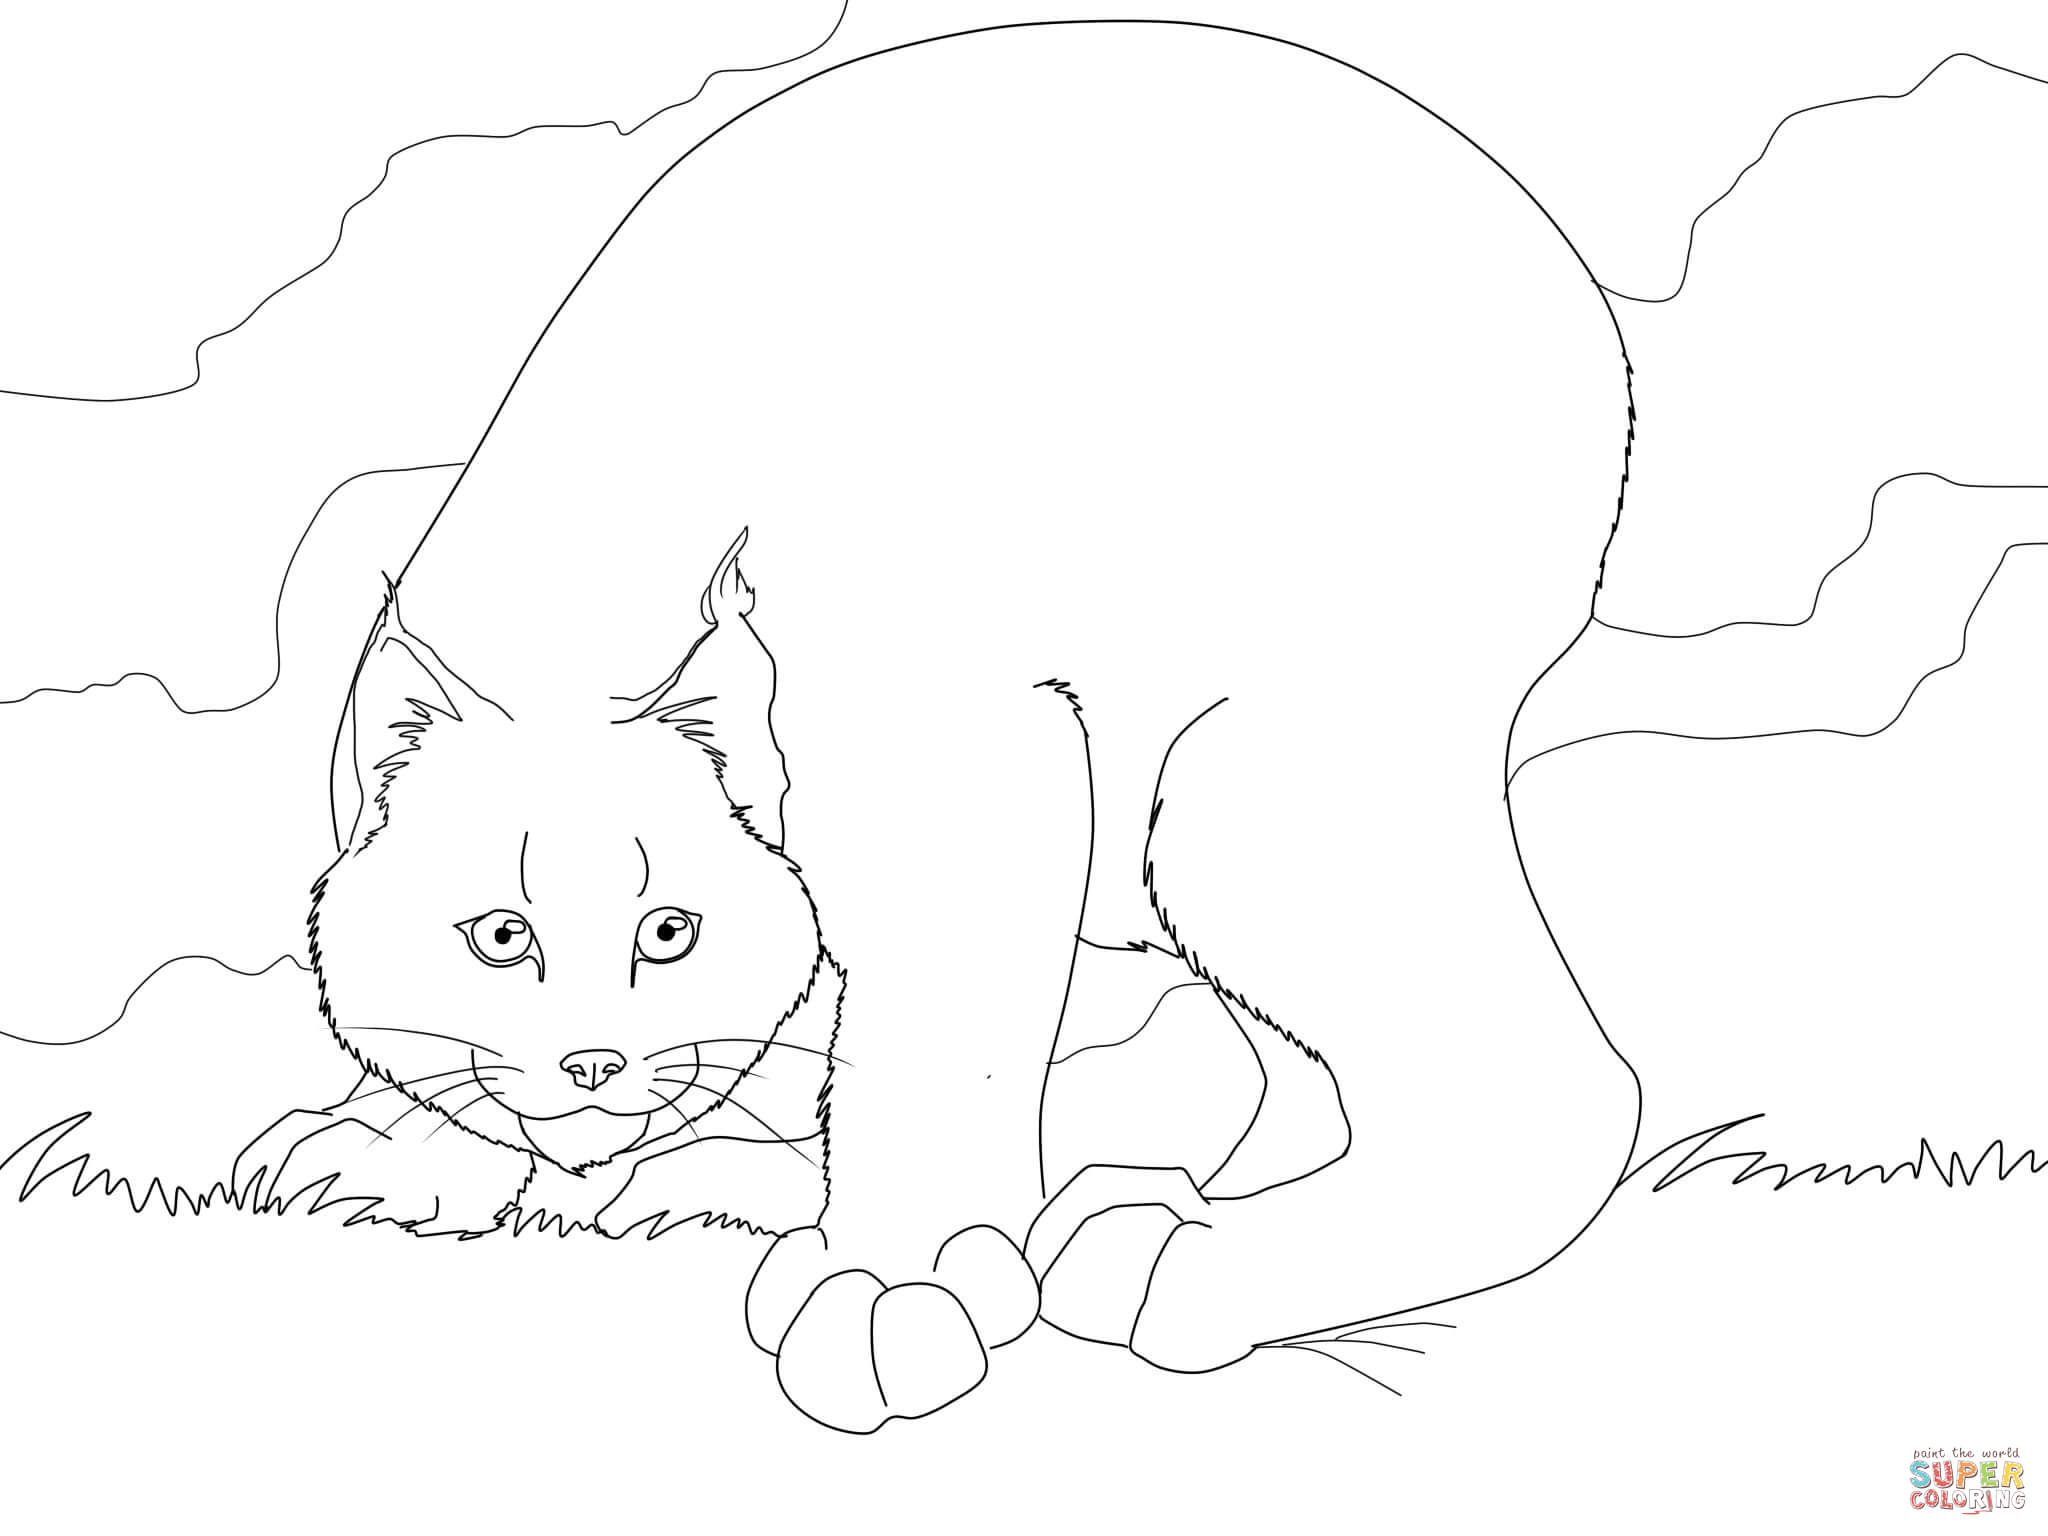 lynx coloring pages free - photo#36